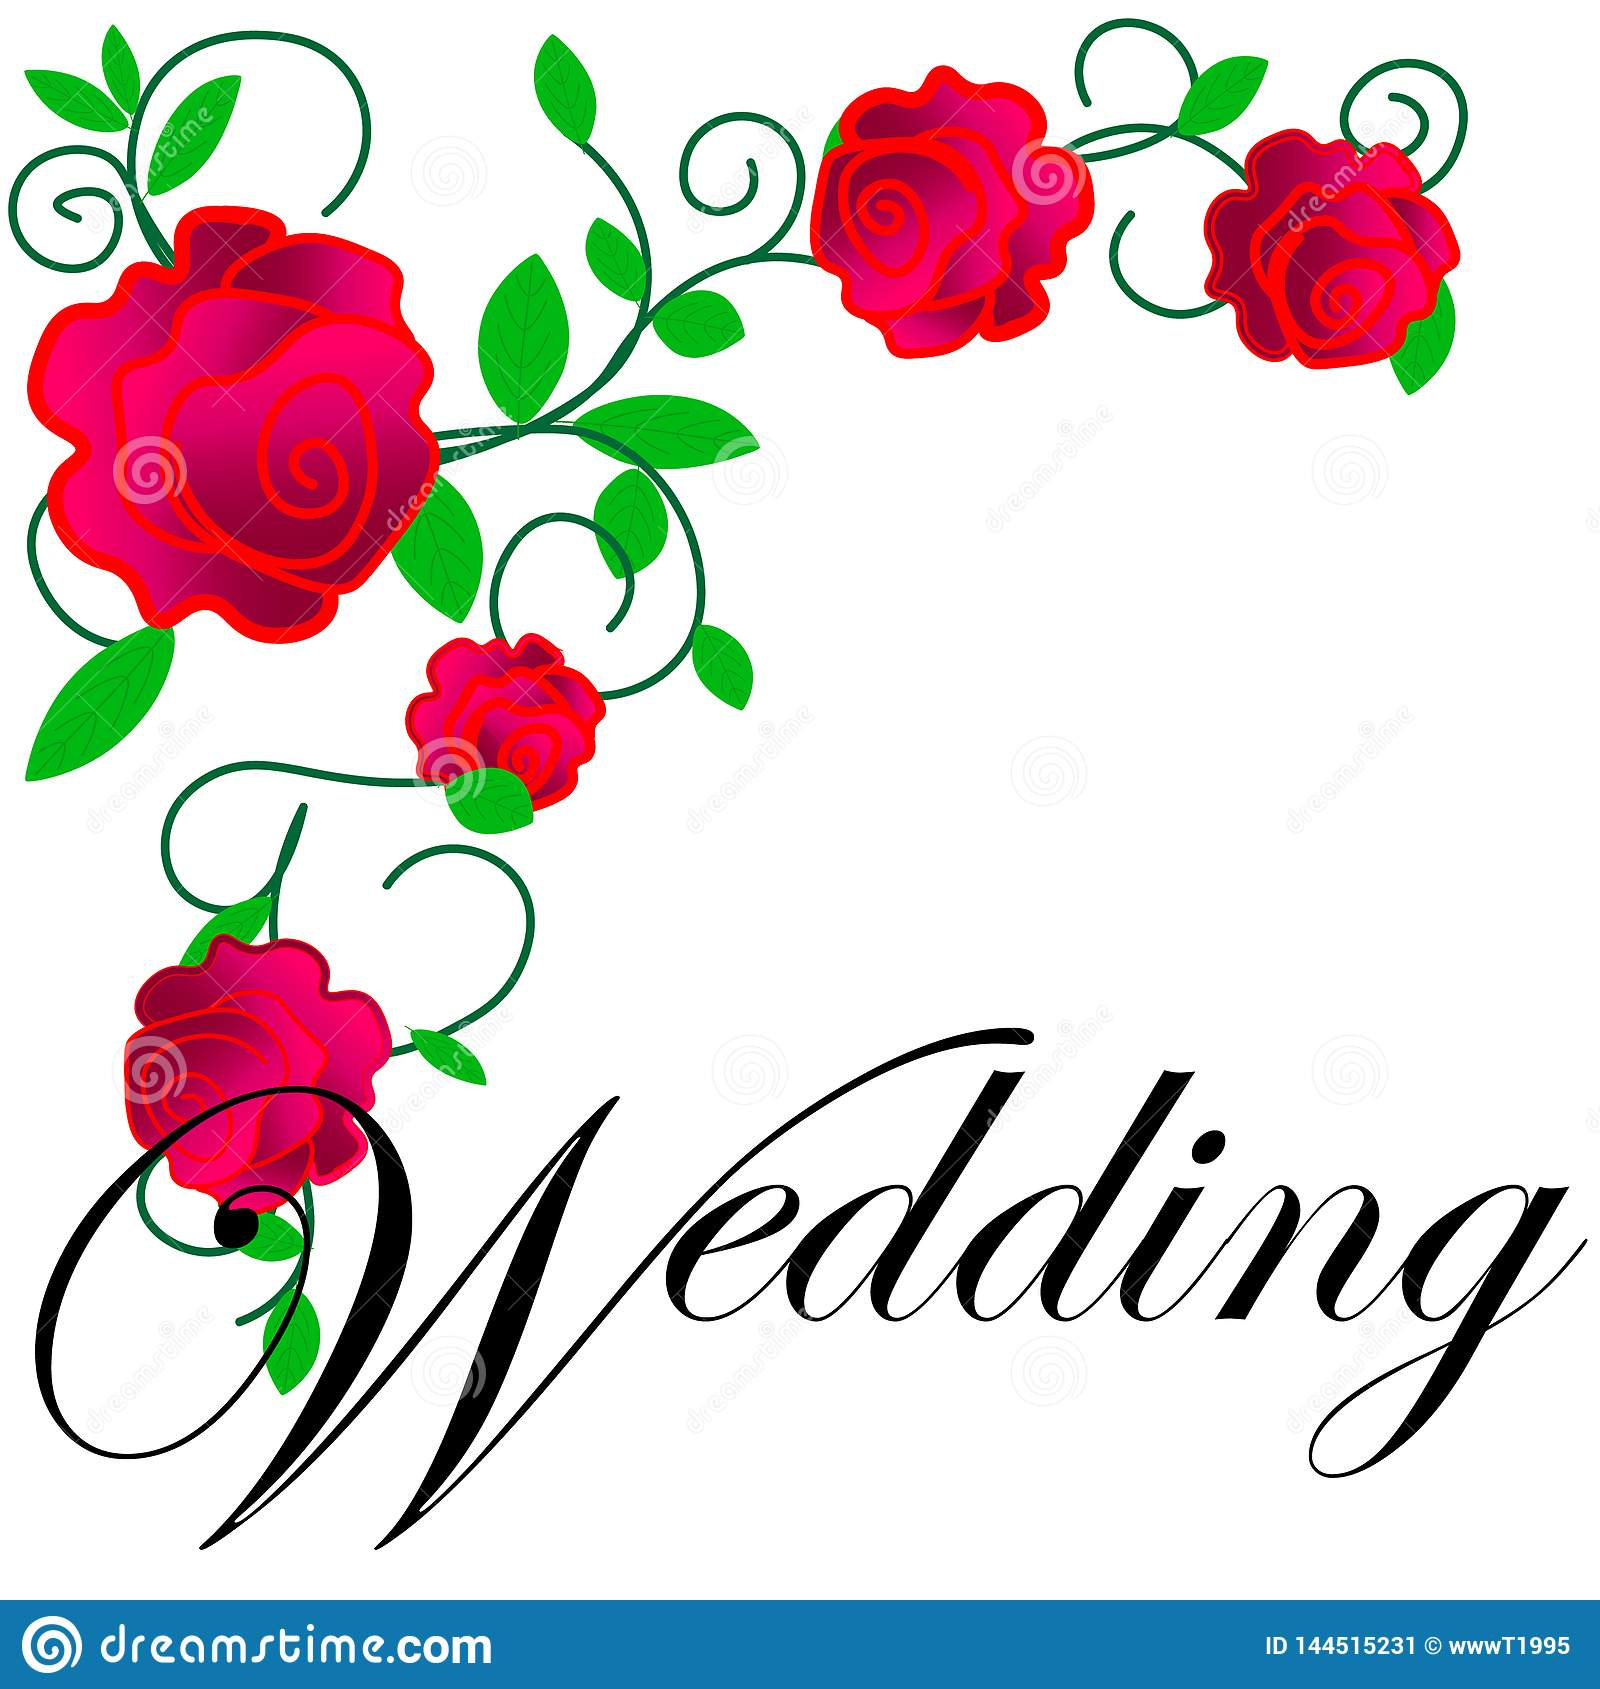 Web. Wedding card or invitation with abstract floral background. Greeting postcard in grunge or retro vector Elegance pattern with